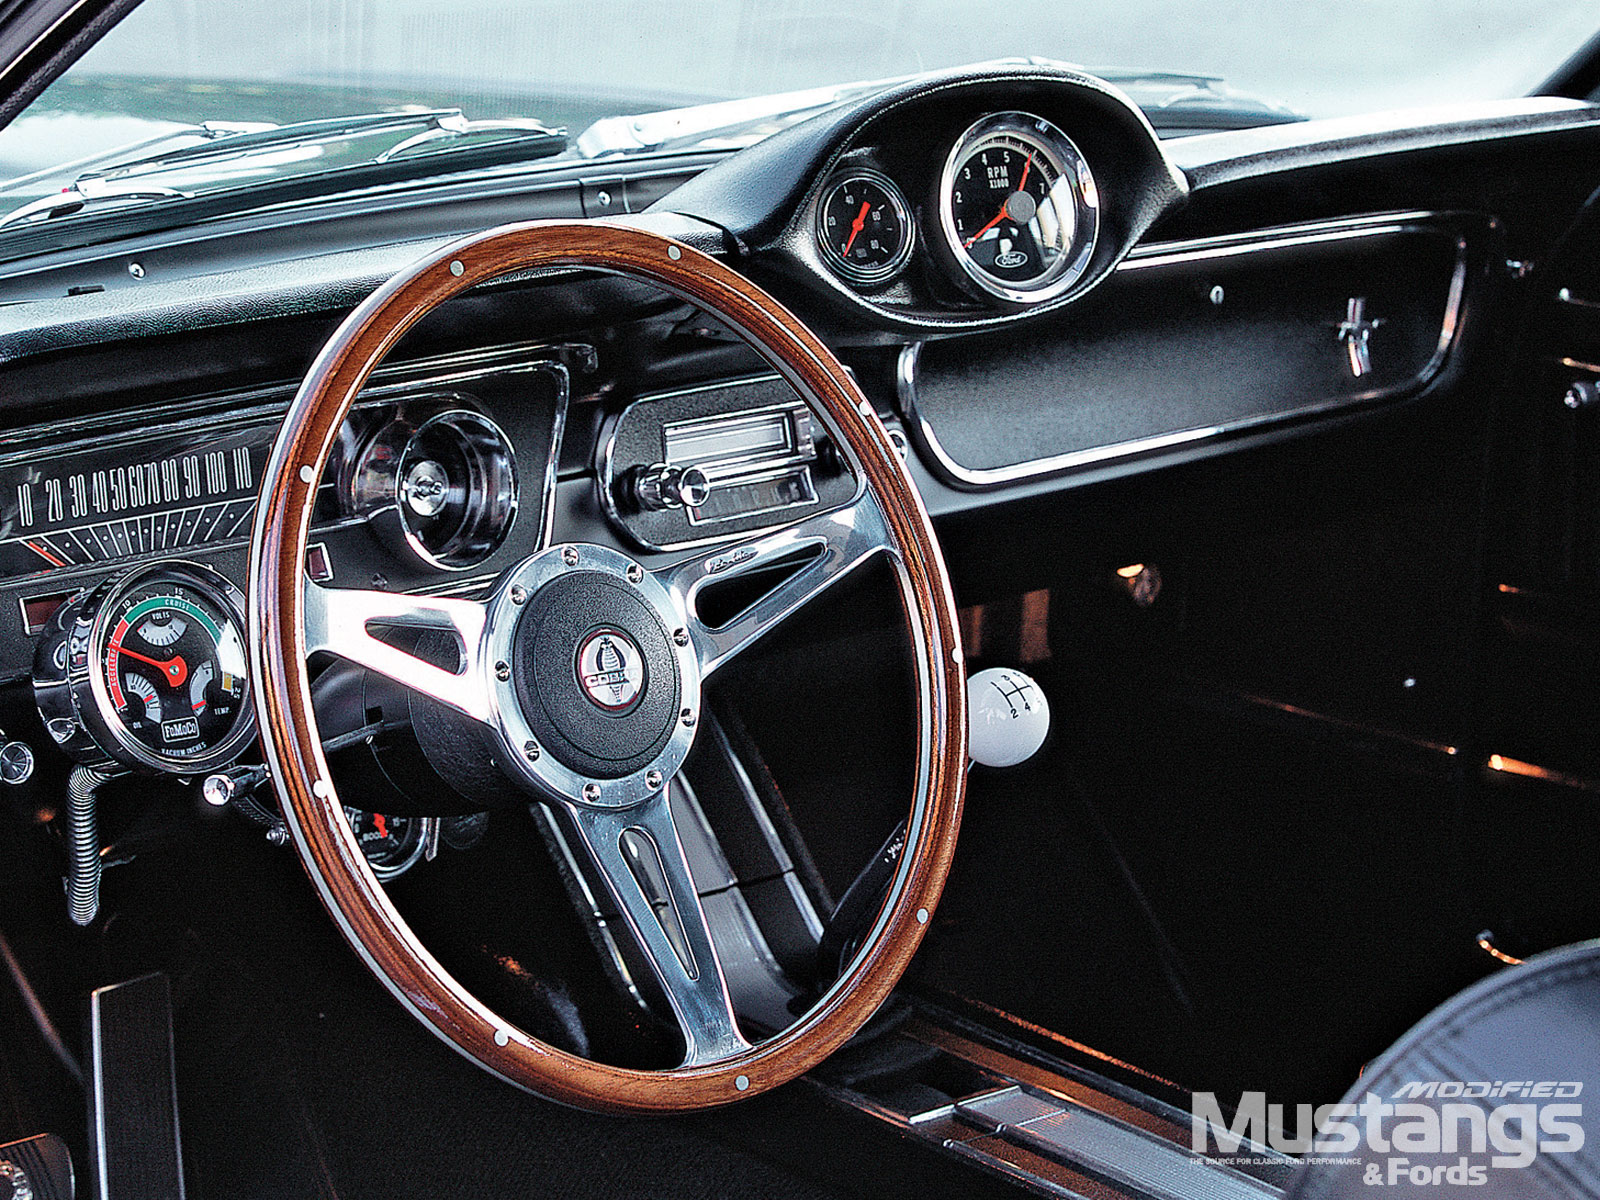 1965 Ford Mustang Fastback Steering Wheel